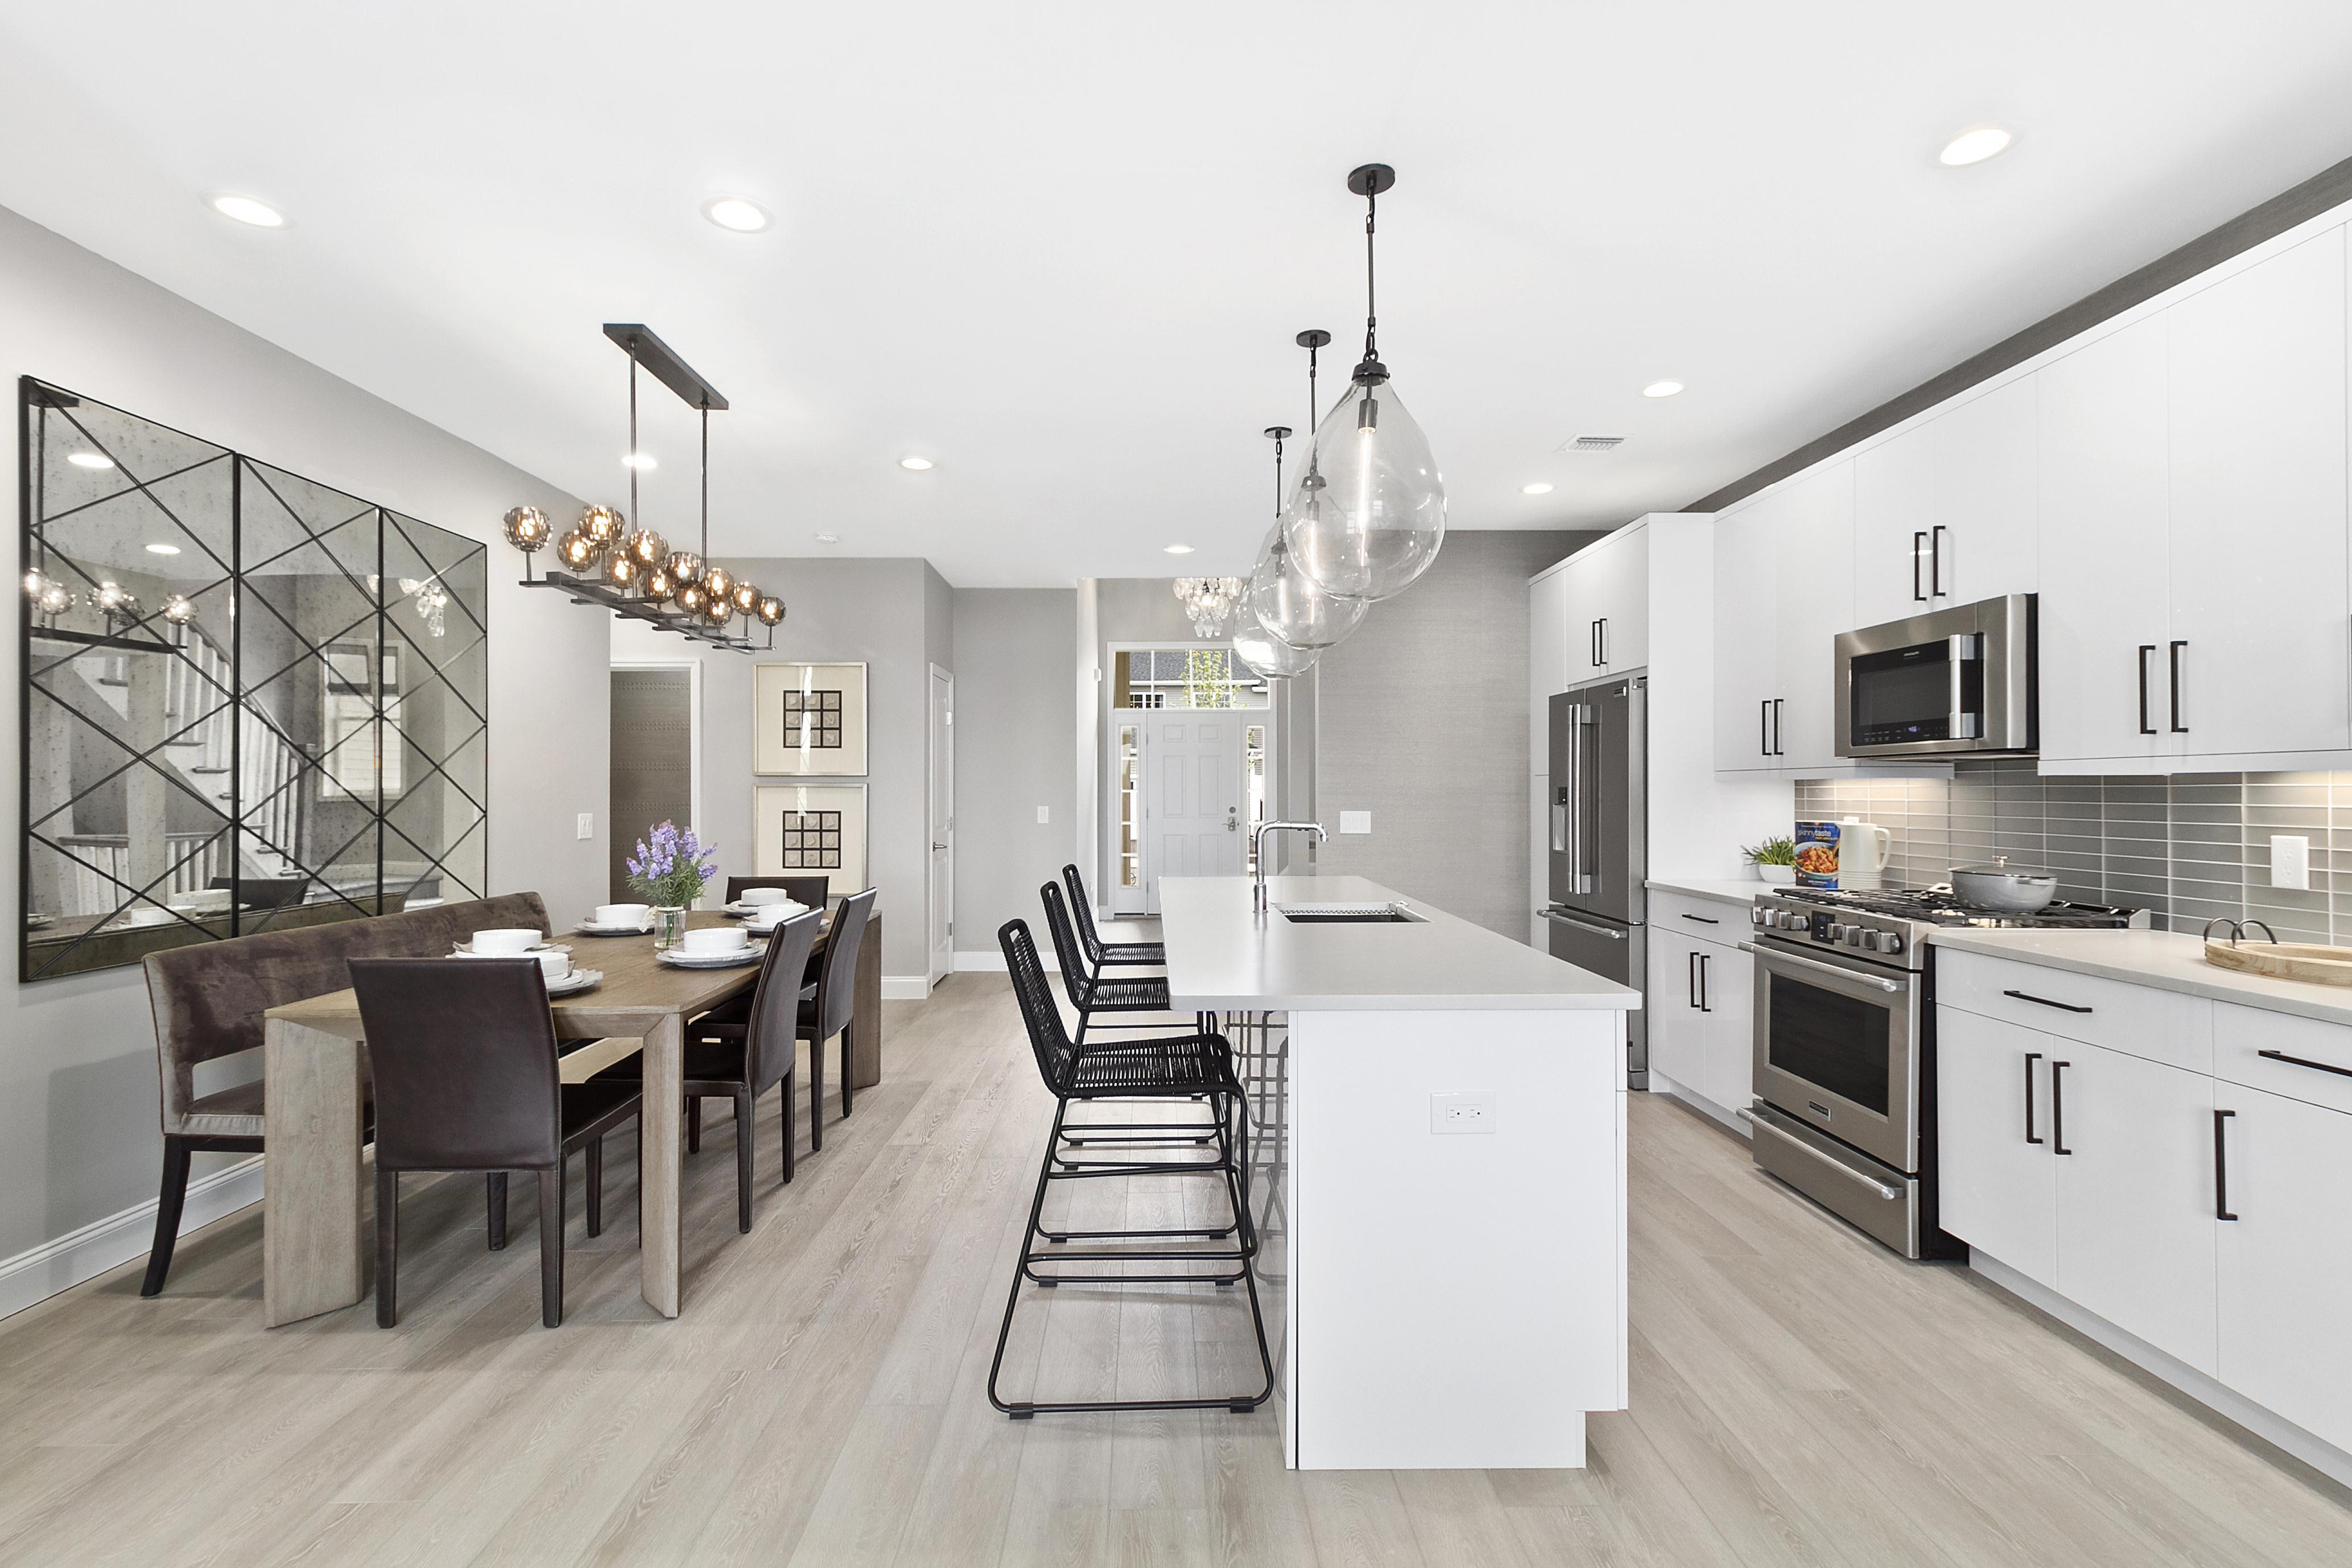 Kitchen featured in The Devonshire By Beechwood Homes in Nassau-Suffolk, NY